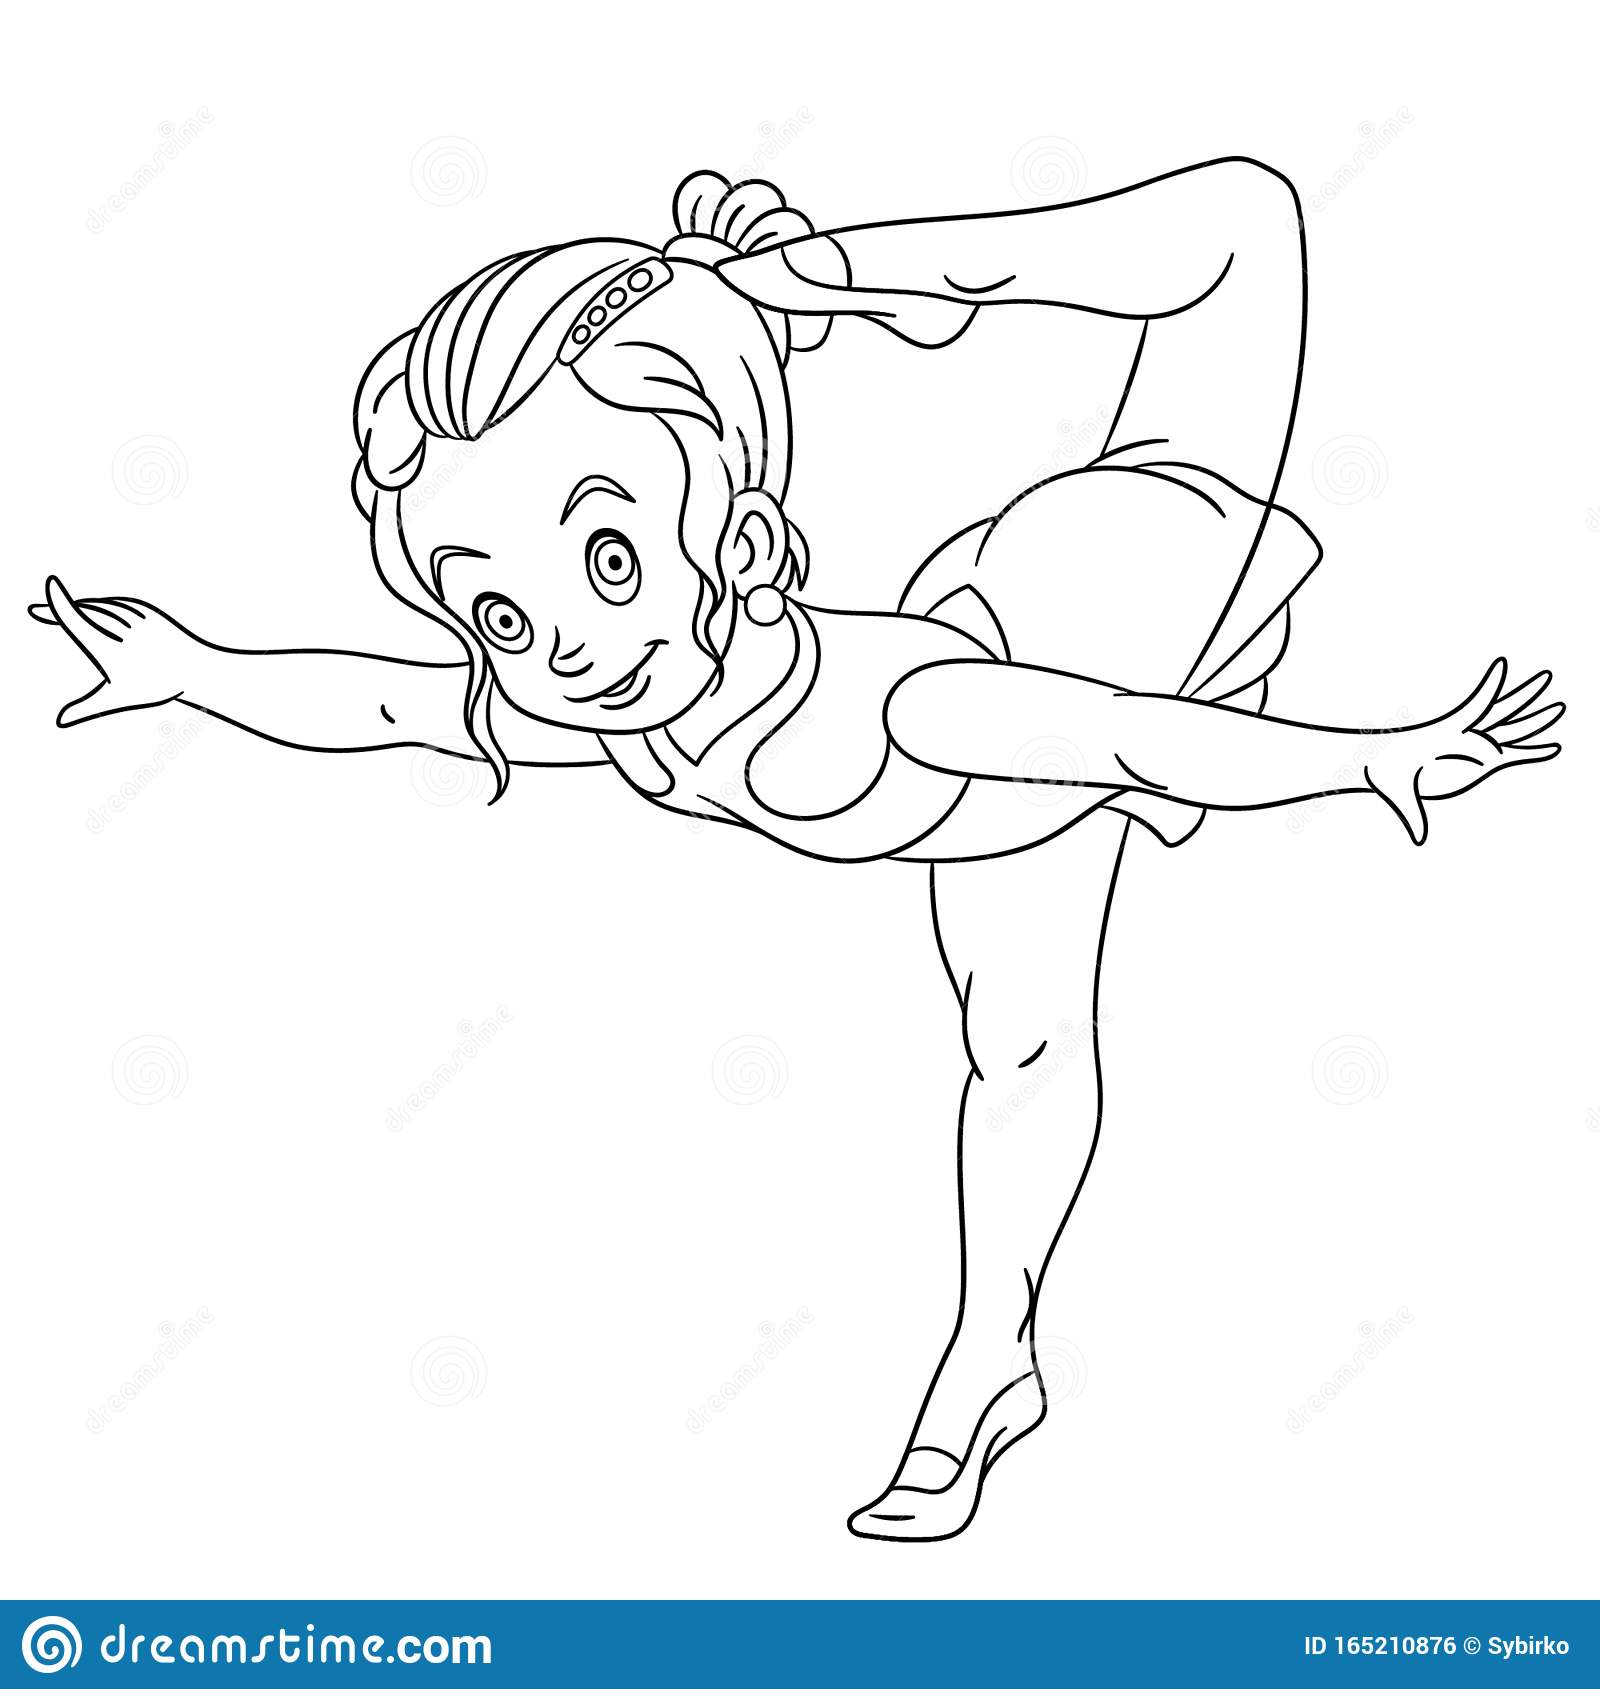 Coloring Page With Girl Rhythmic Gymnastic Or Ballet Stock Vector Illustration Of Child Drawing 165210876